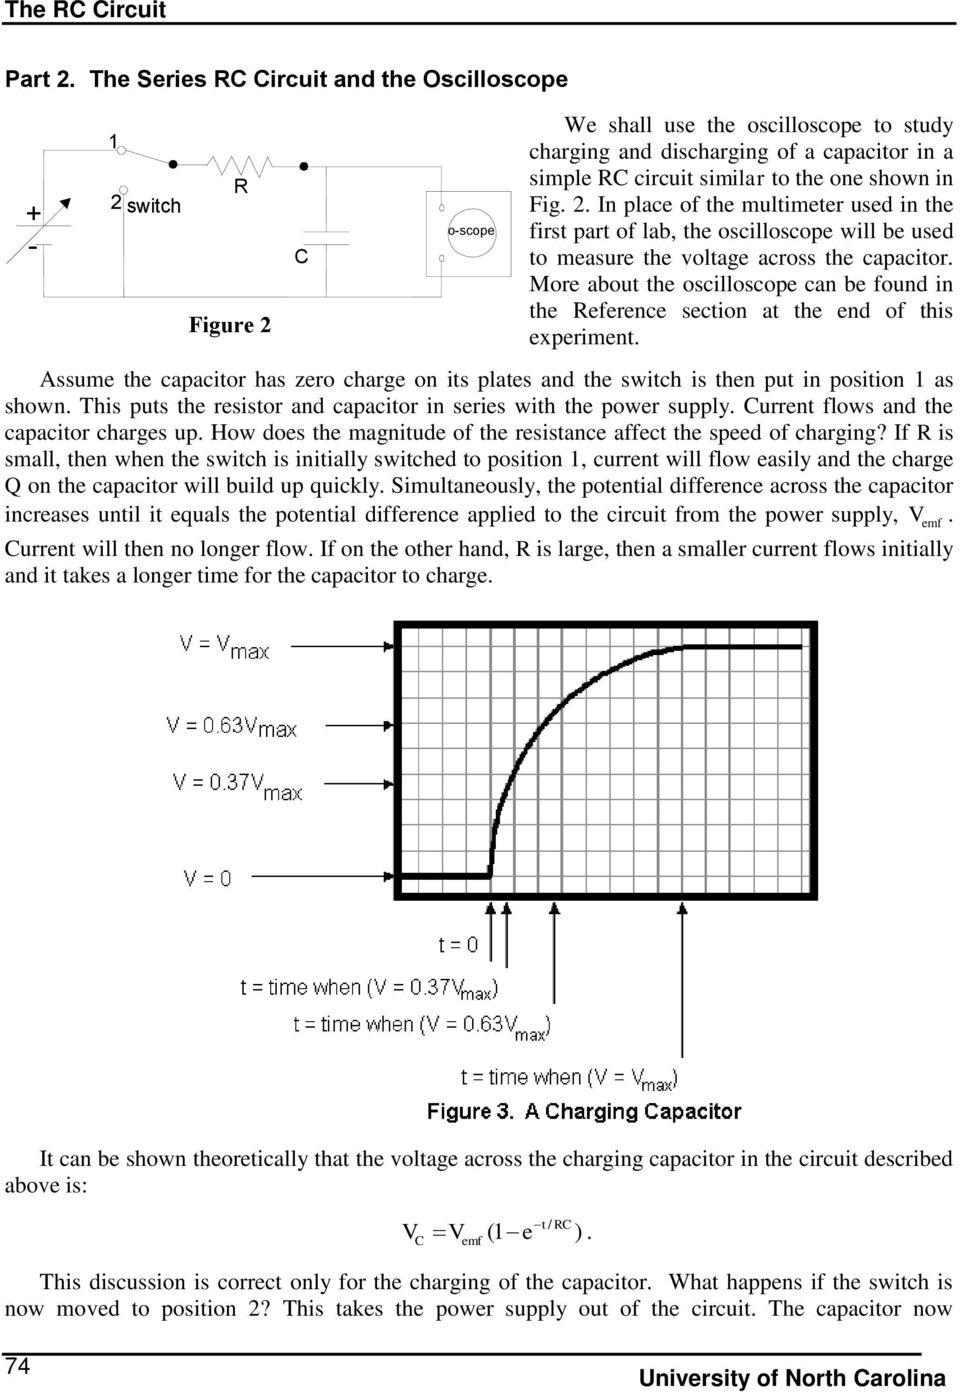 The Rc Circuit Pre Lab Questions Introduction Pdf How To Simulate An In Ltspice With Initial Condition Place Of Multimeter Used First Part